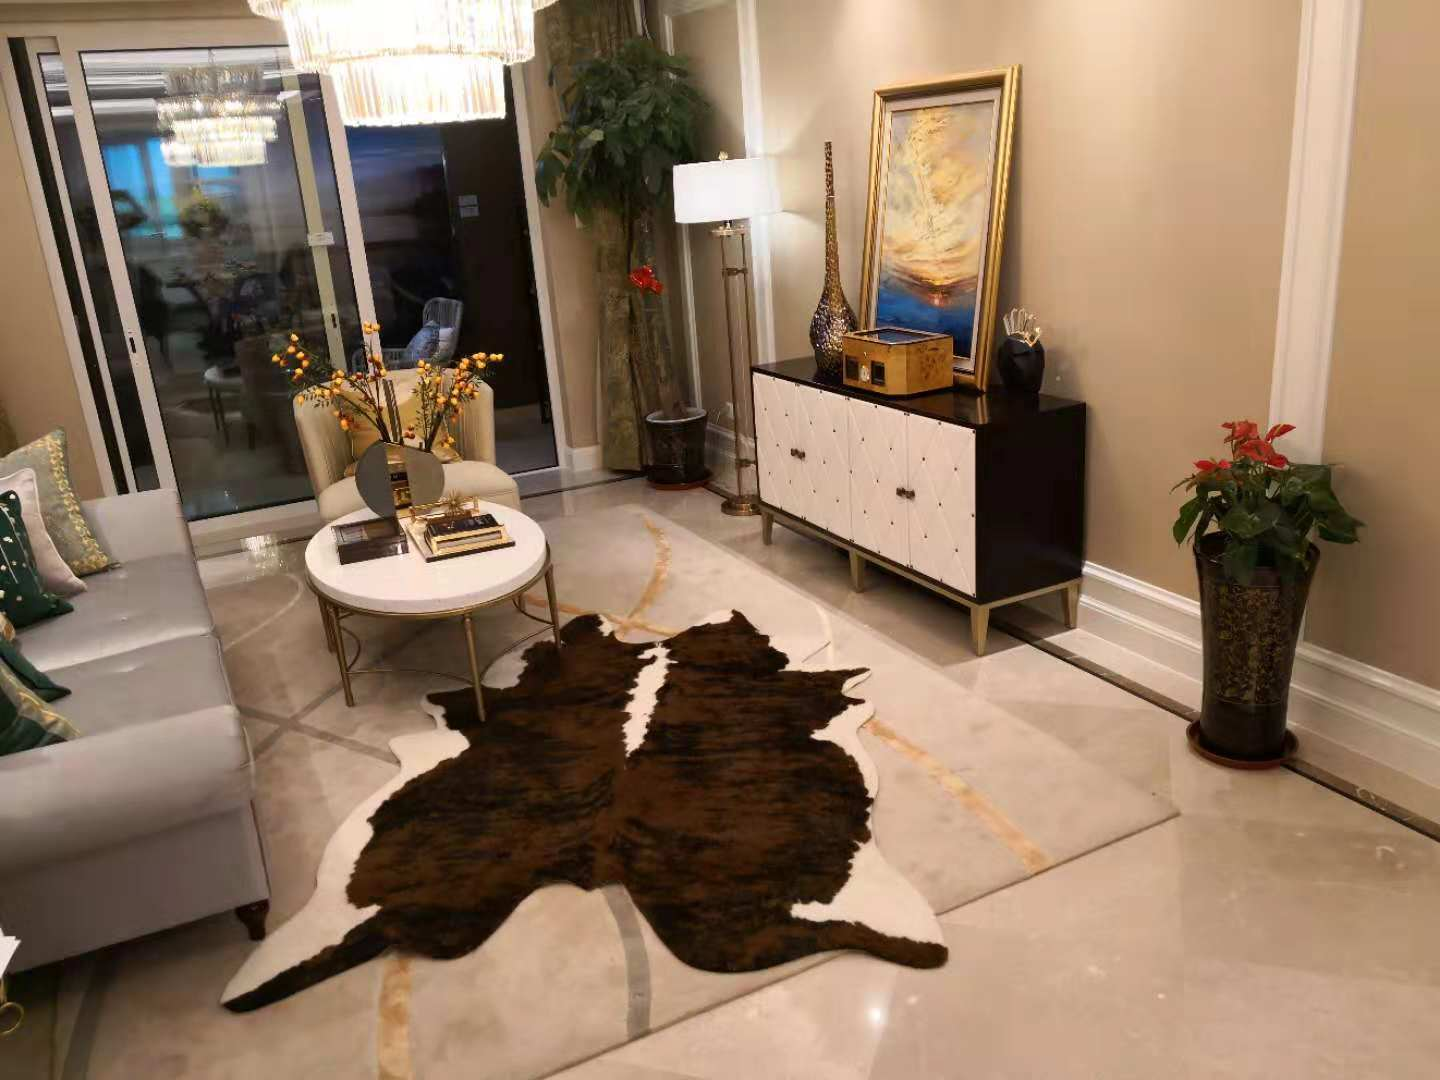 Animal Cow Print Rug Big Size Faux Cowhide Rug Non Slip Animal Printed Rug Cow Skin Area Rug Carpet For Home Office Living Room